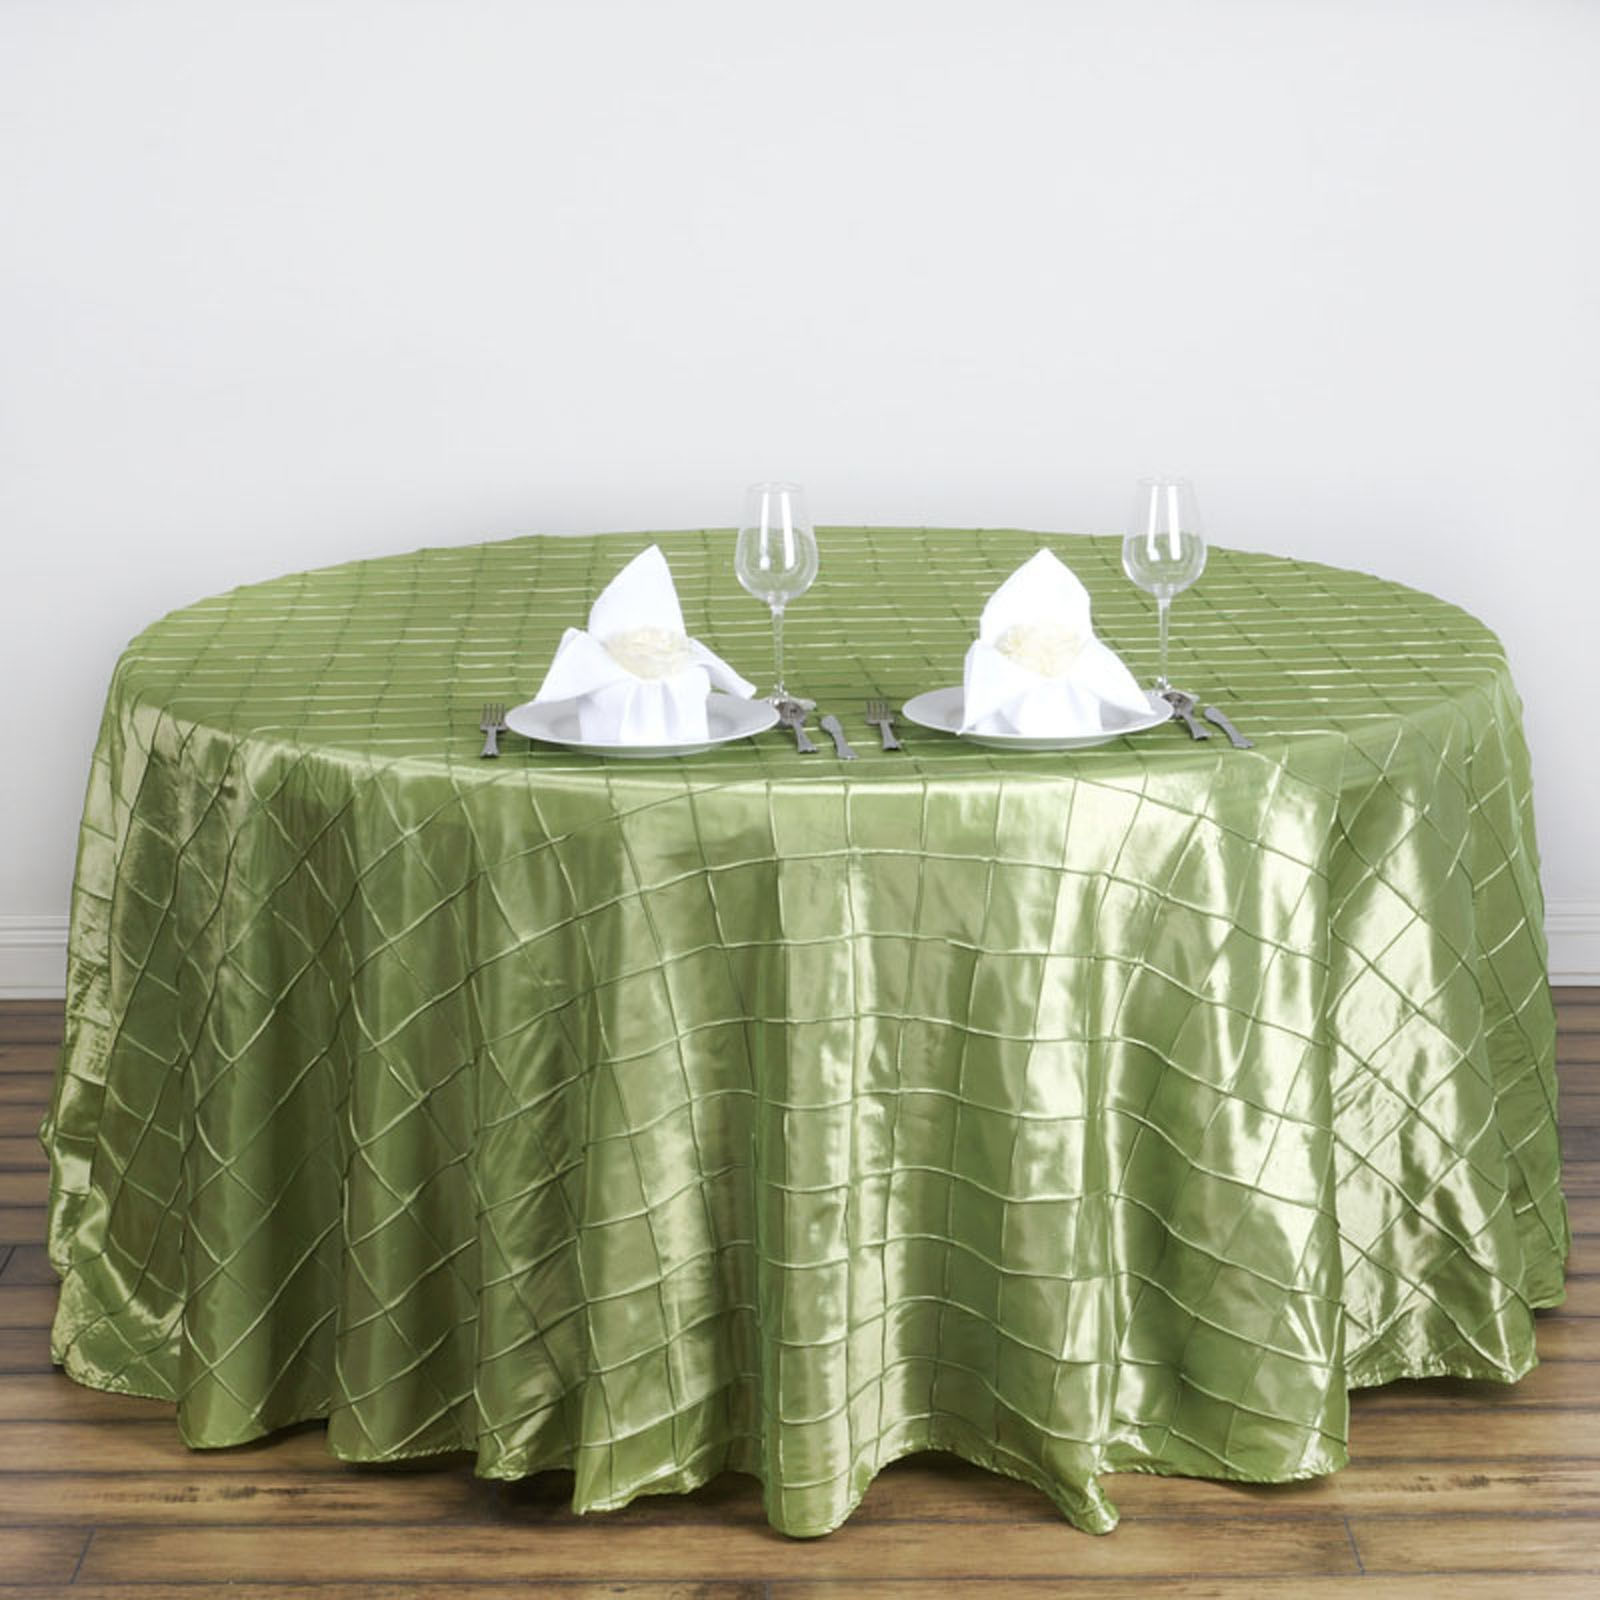 120 Pintuck Fancy Round Tablecloths Linens Wedding Party Catering Supplies